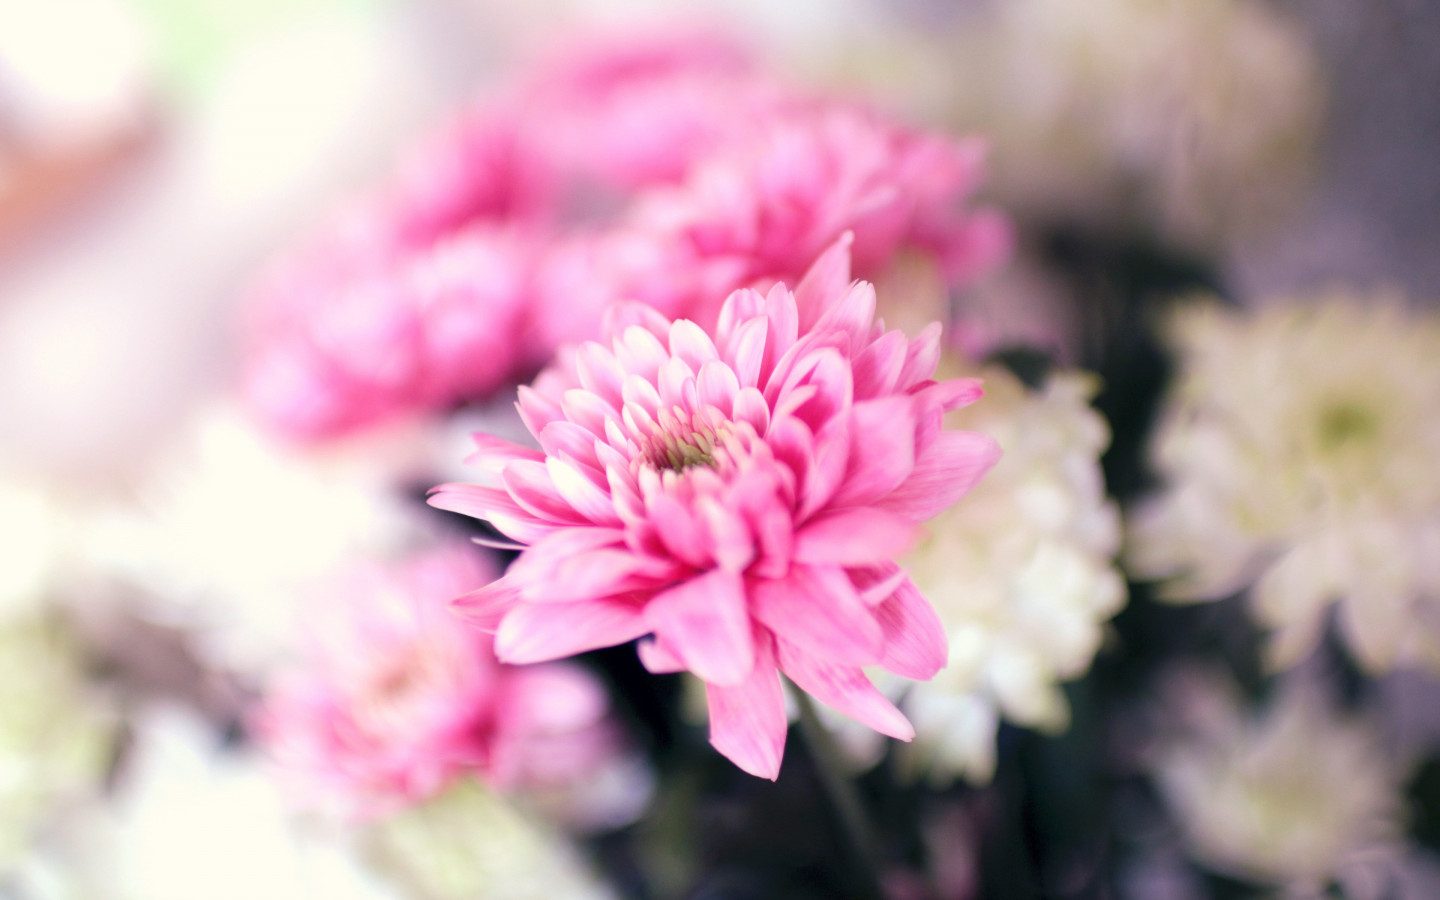 Pink and white flowers | 1440x900 wallpaper